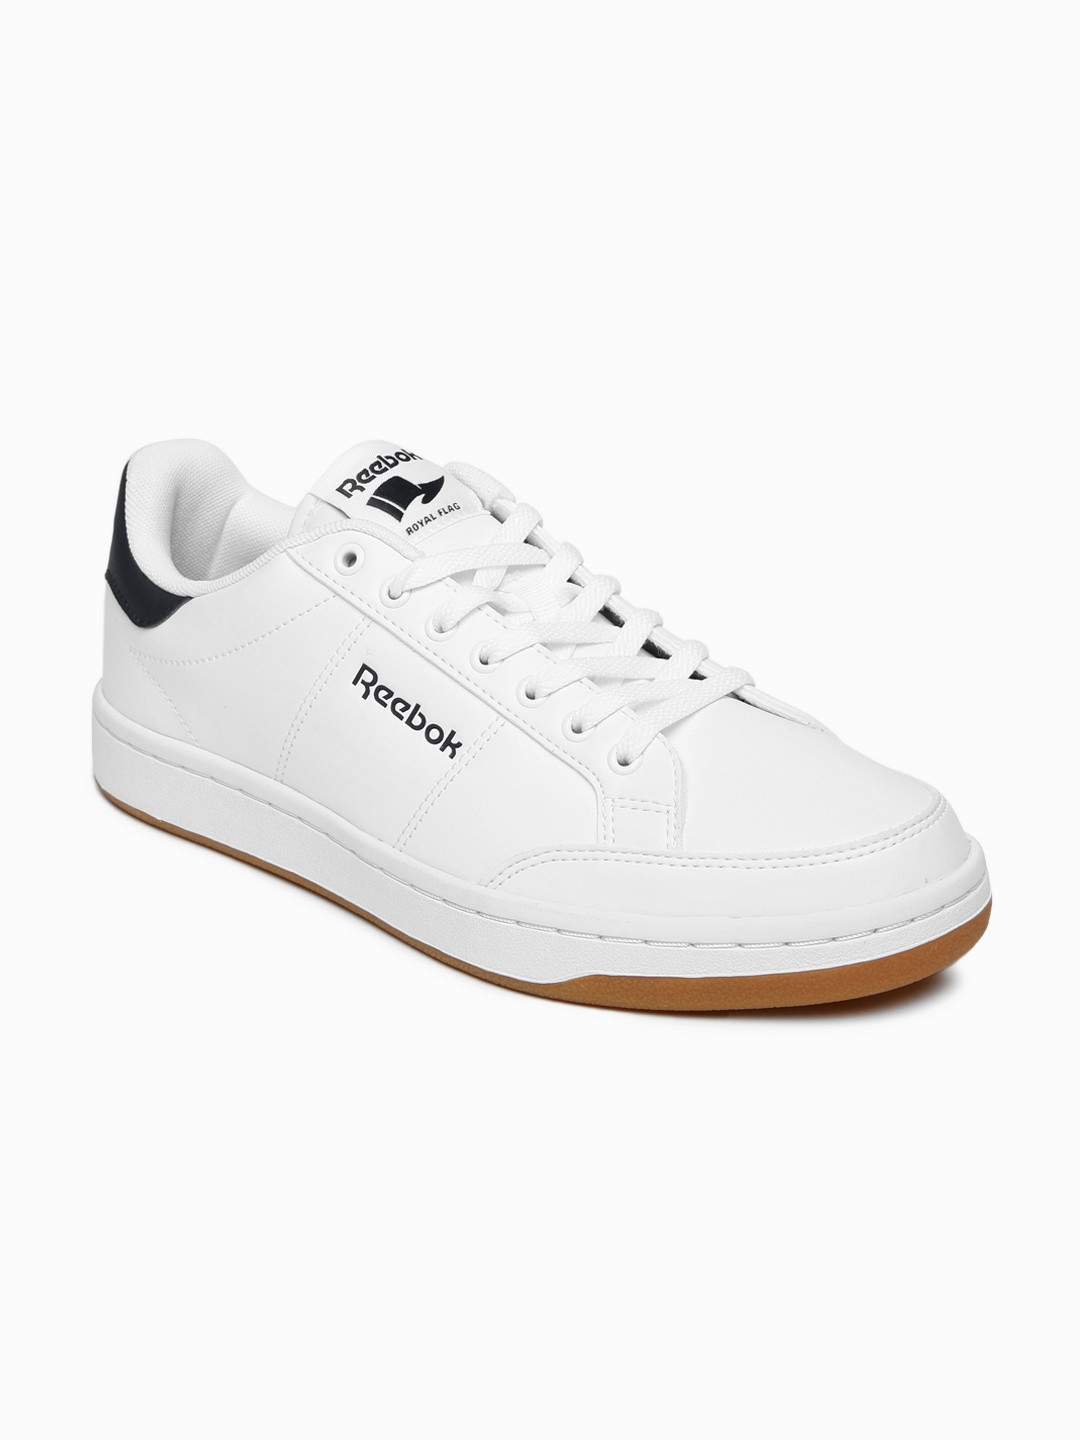 88088122bcc reebok casual shoes cheap   OFF45% The Largest Catalog Discounts